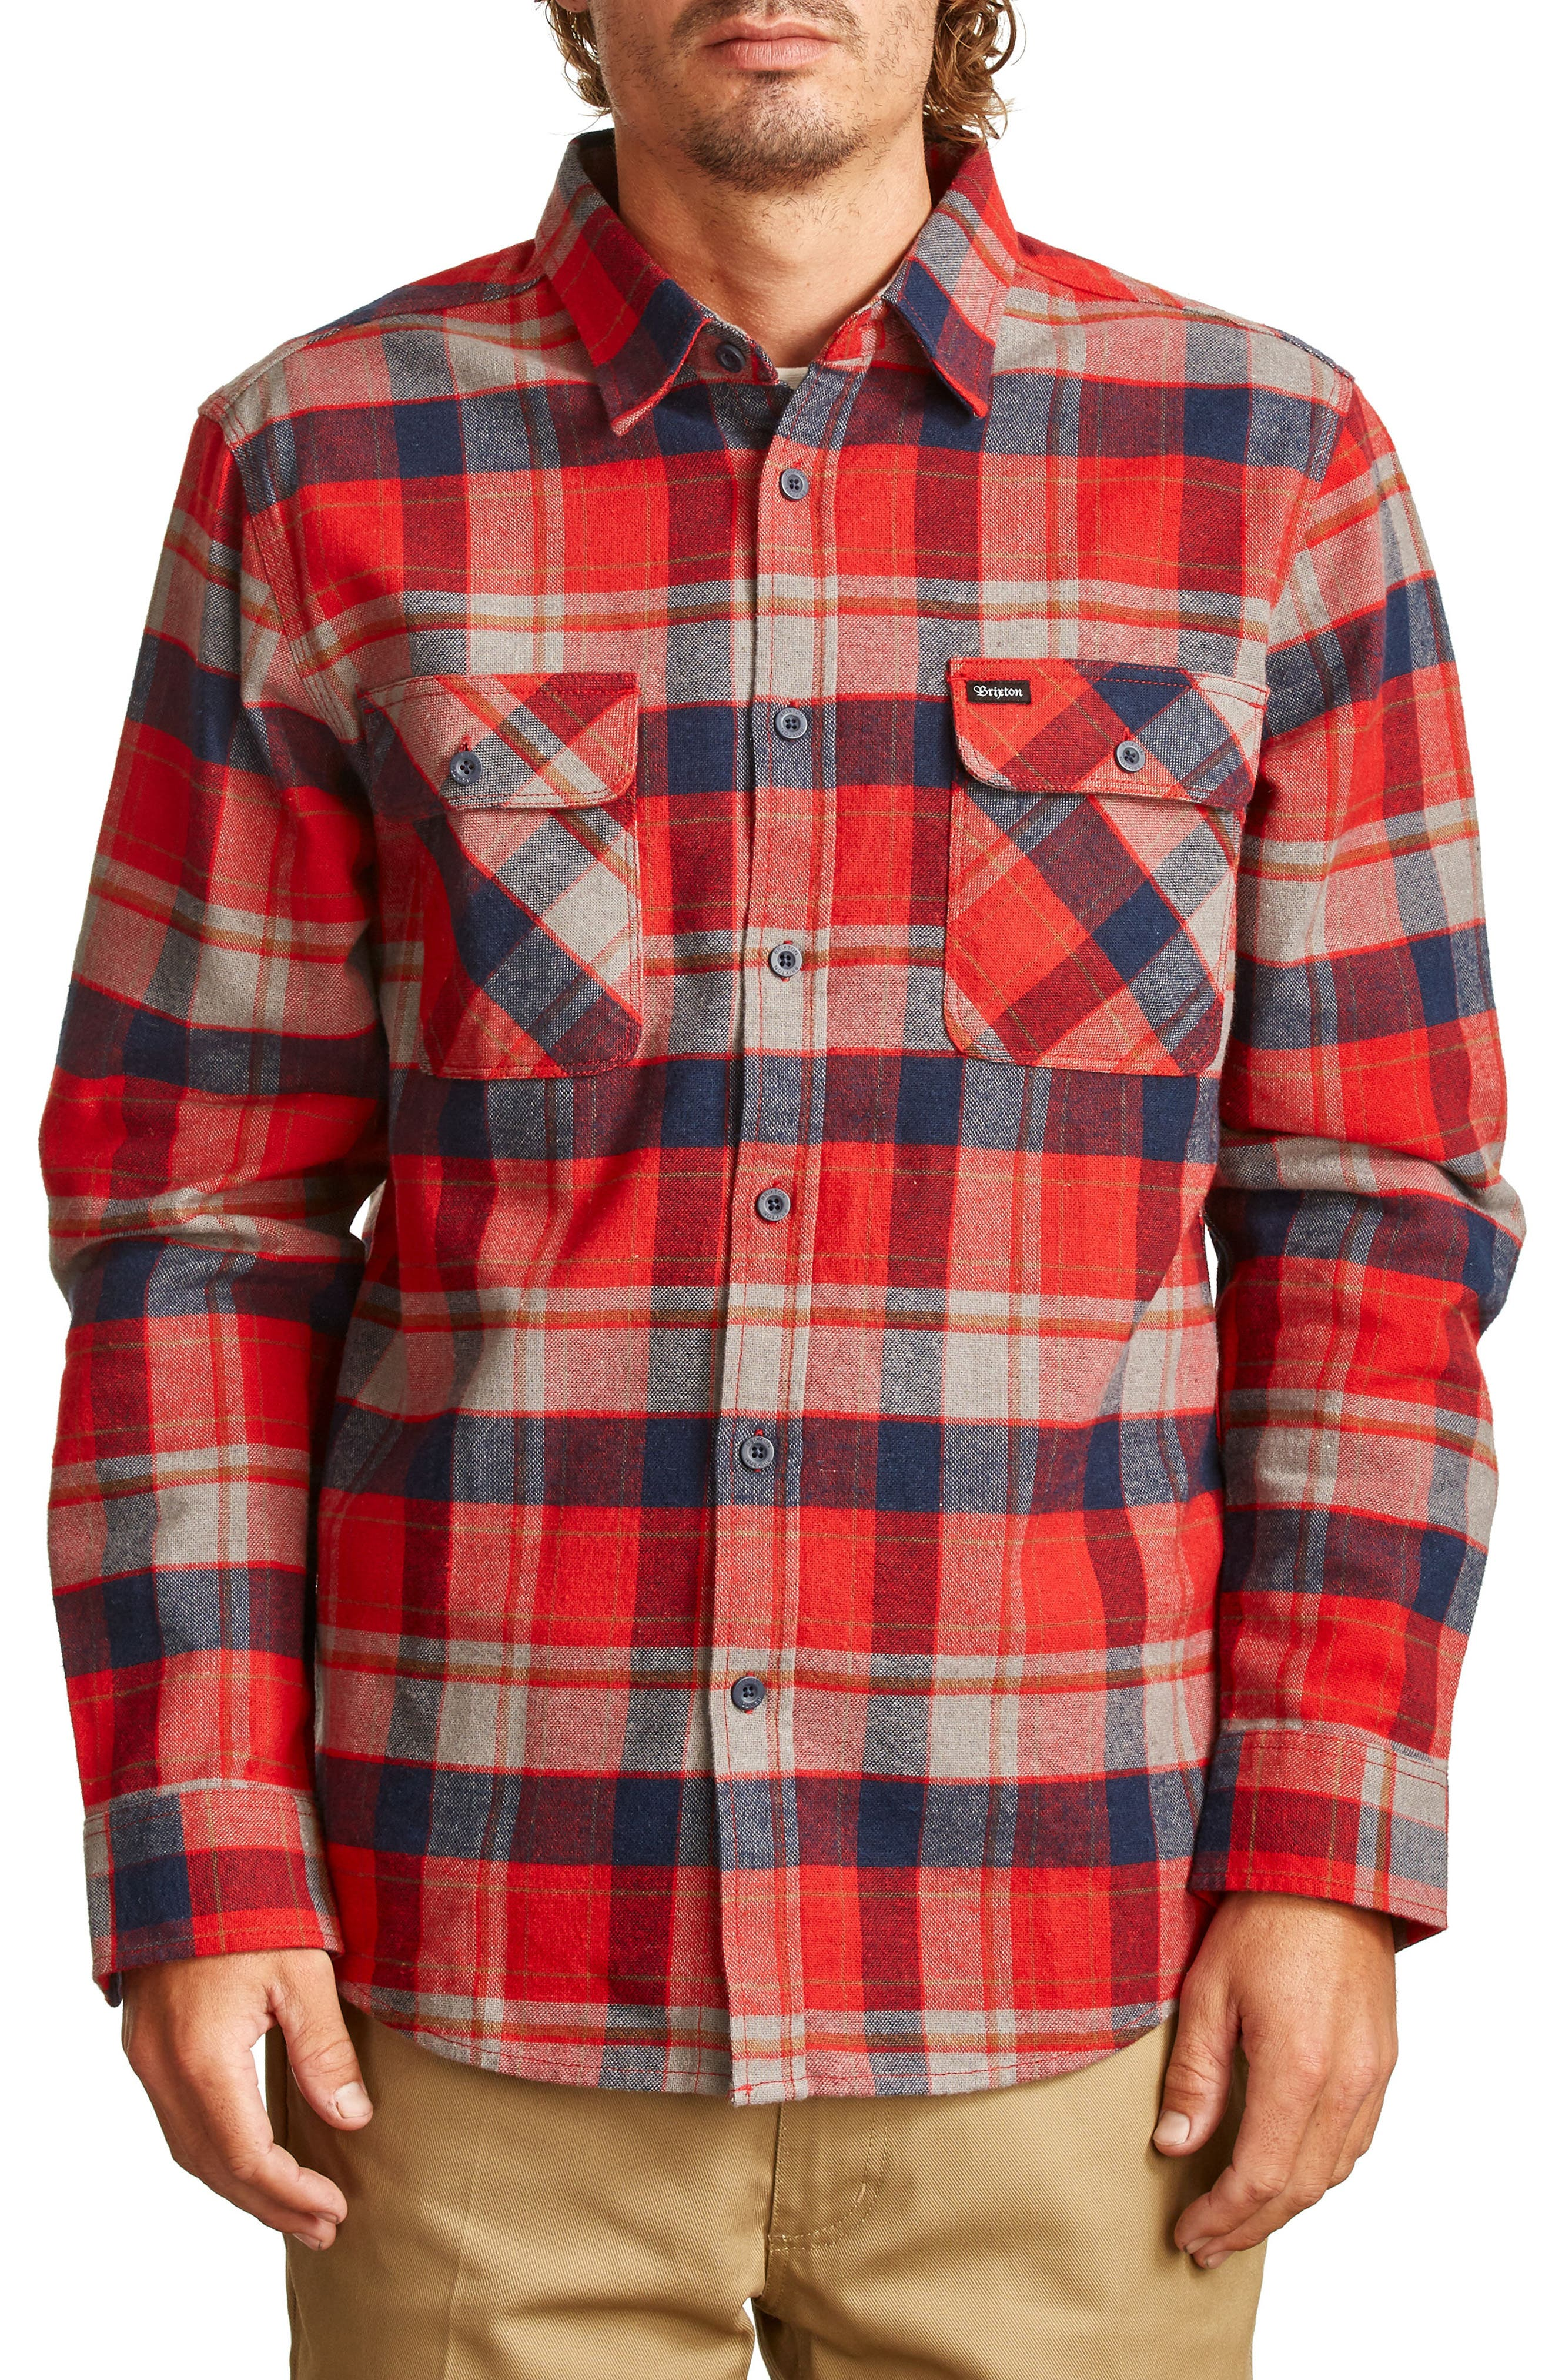 Bowery Flannel Shirt,                             Main thumbnail 1, color,                             Red/ Heather Grey/ Navy